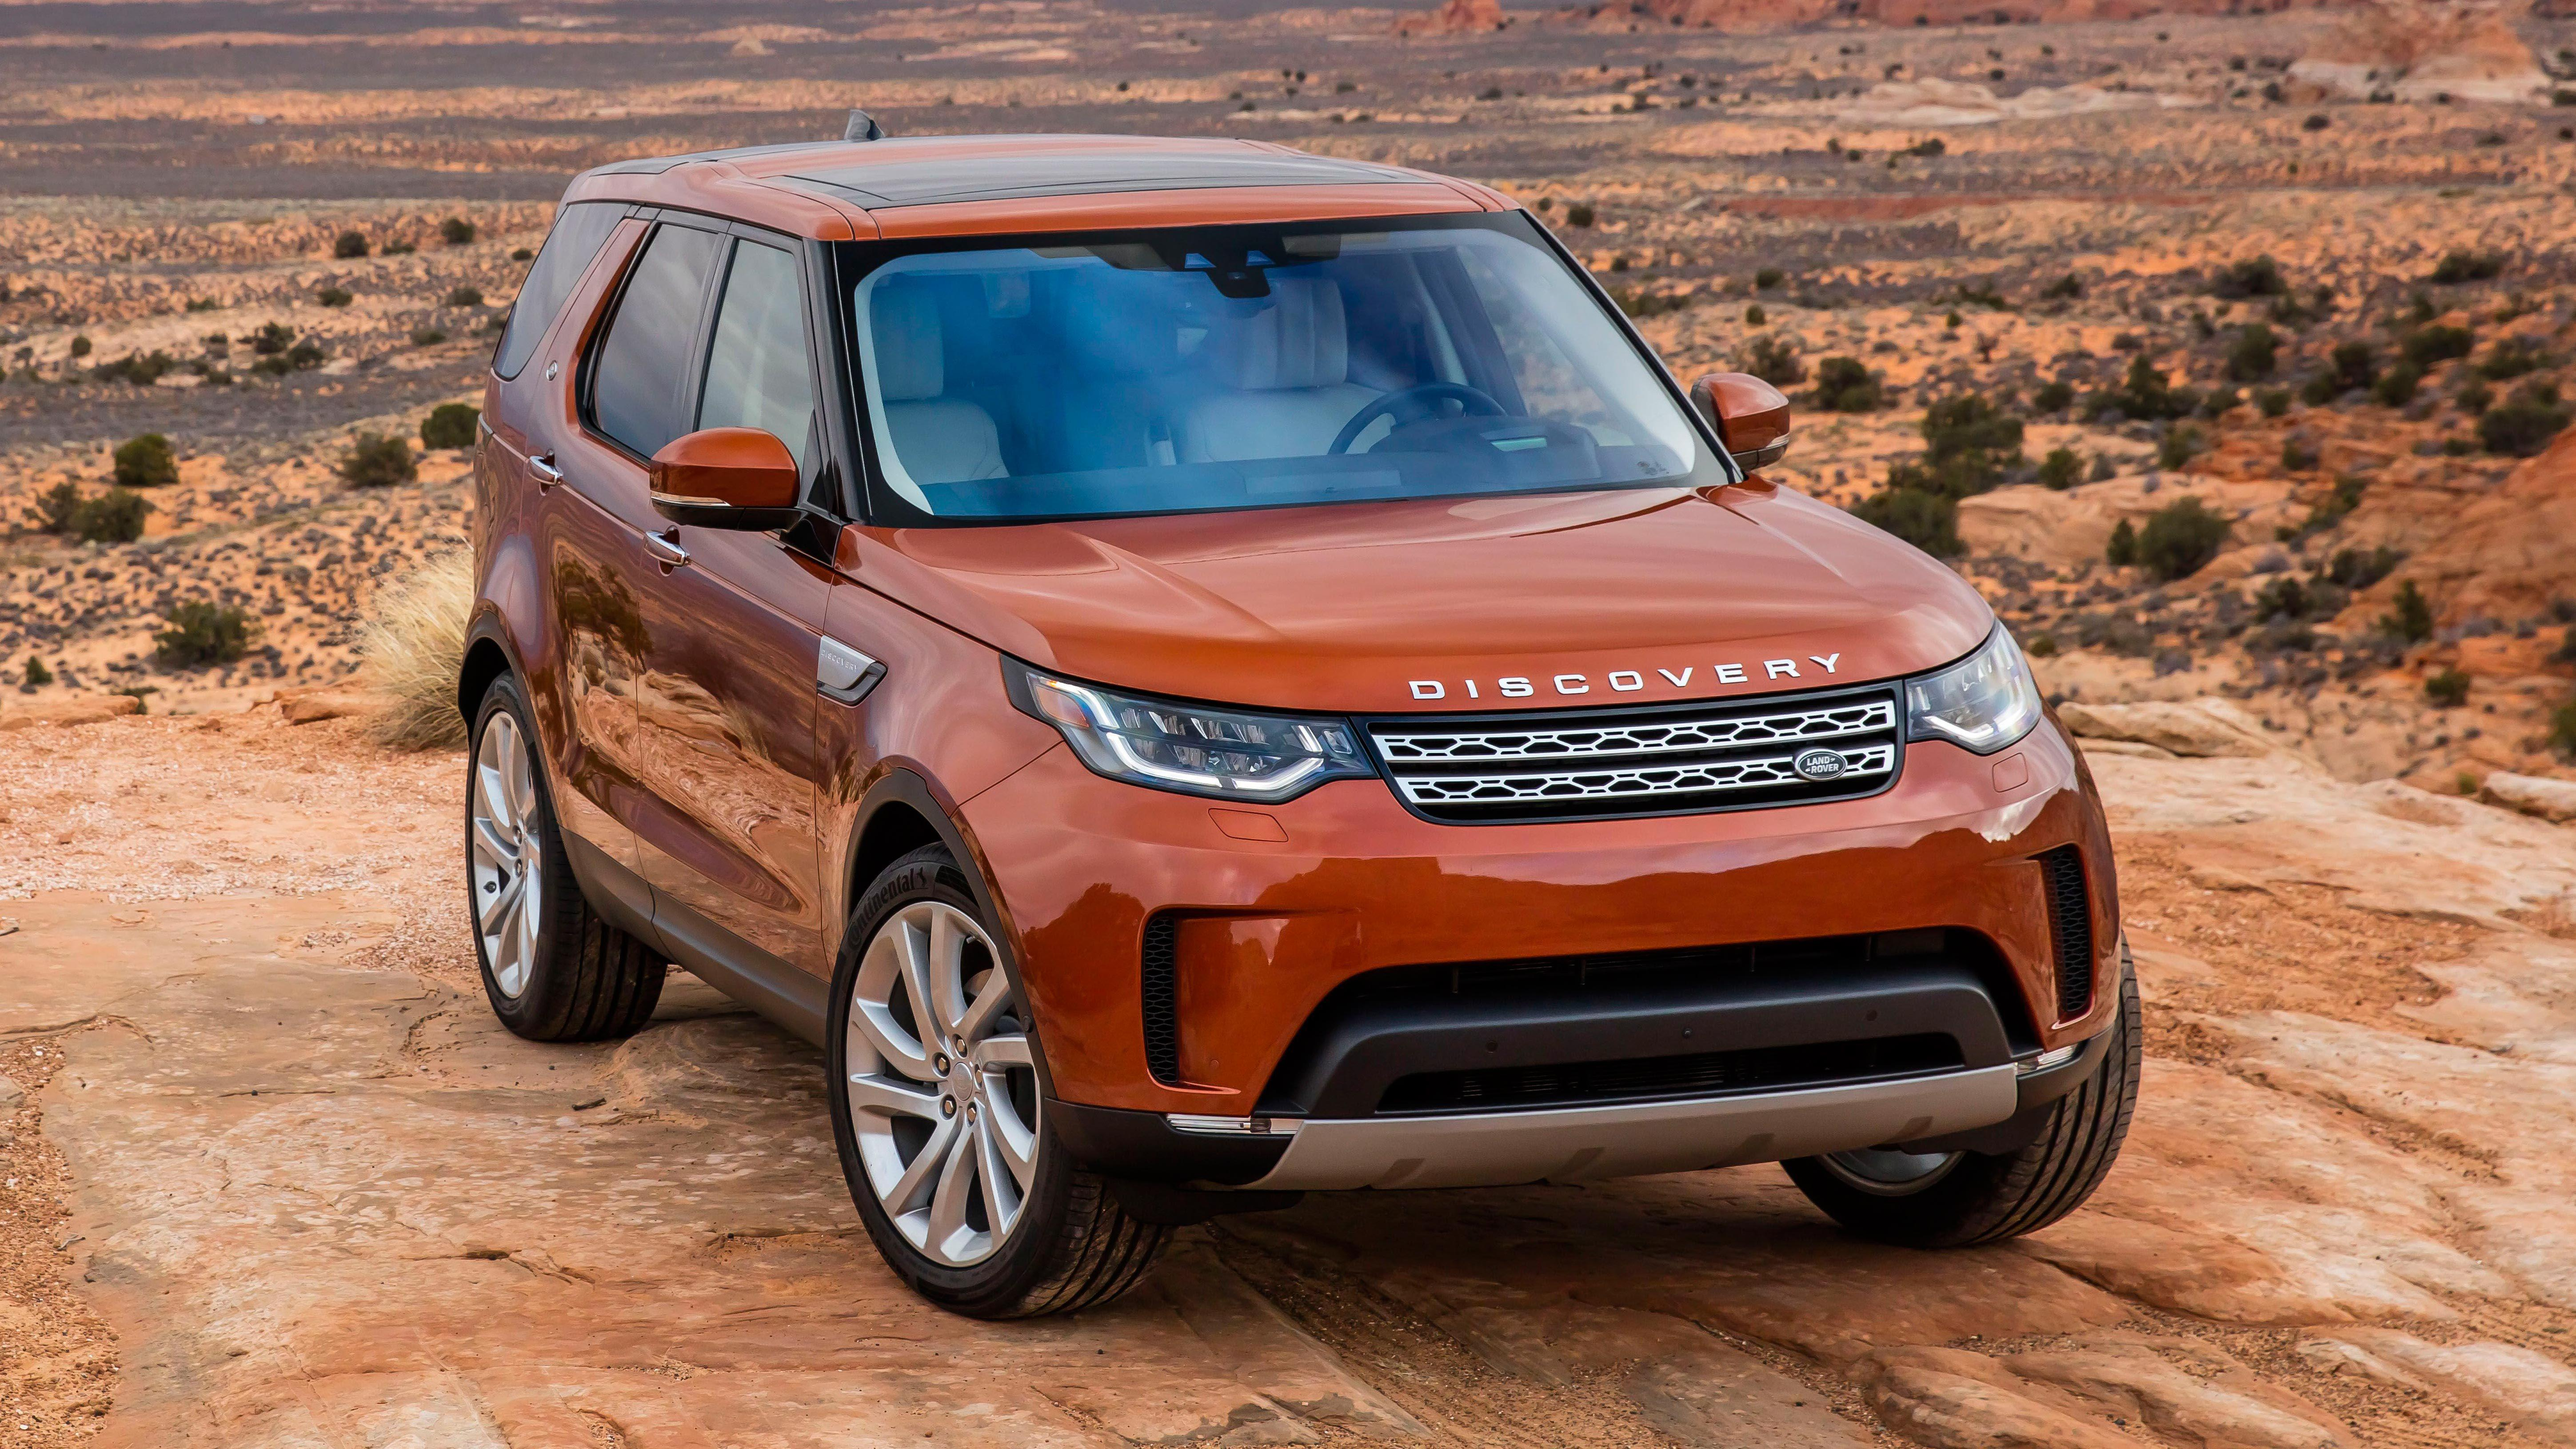 2017 Land Rover Discovery: Bigger, bolder, more capable than ever